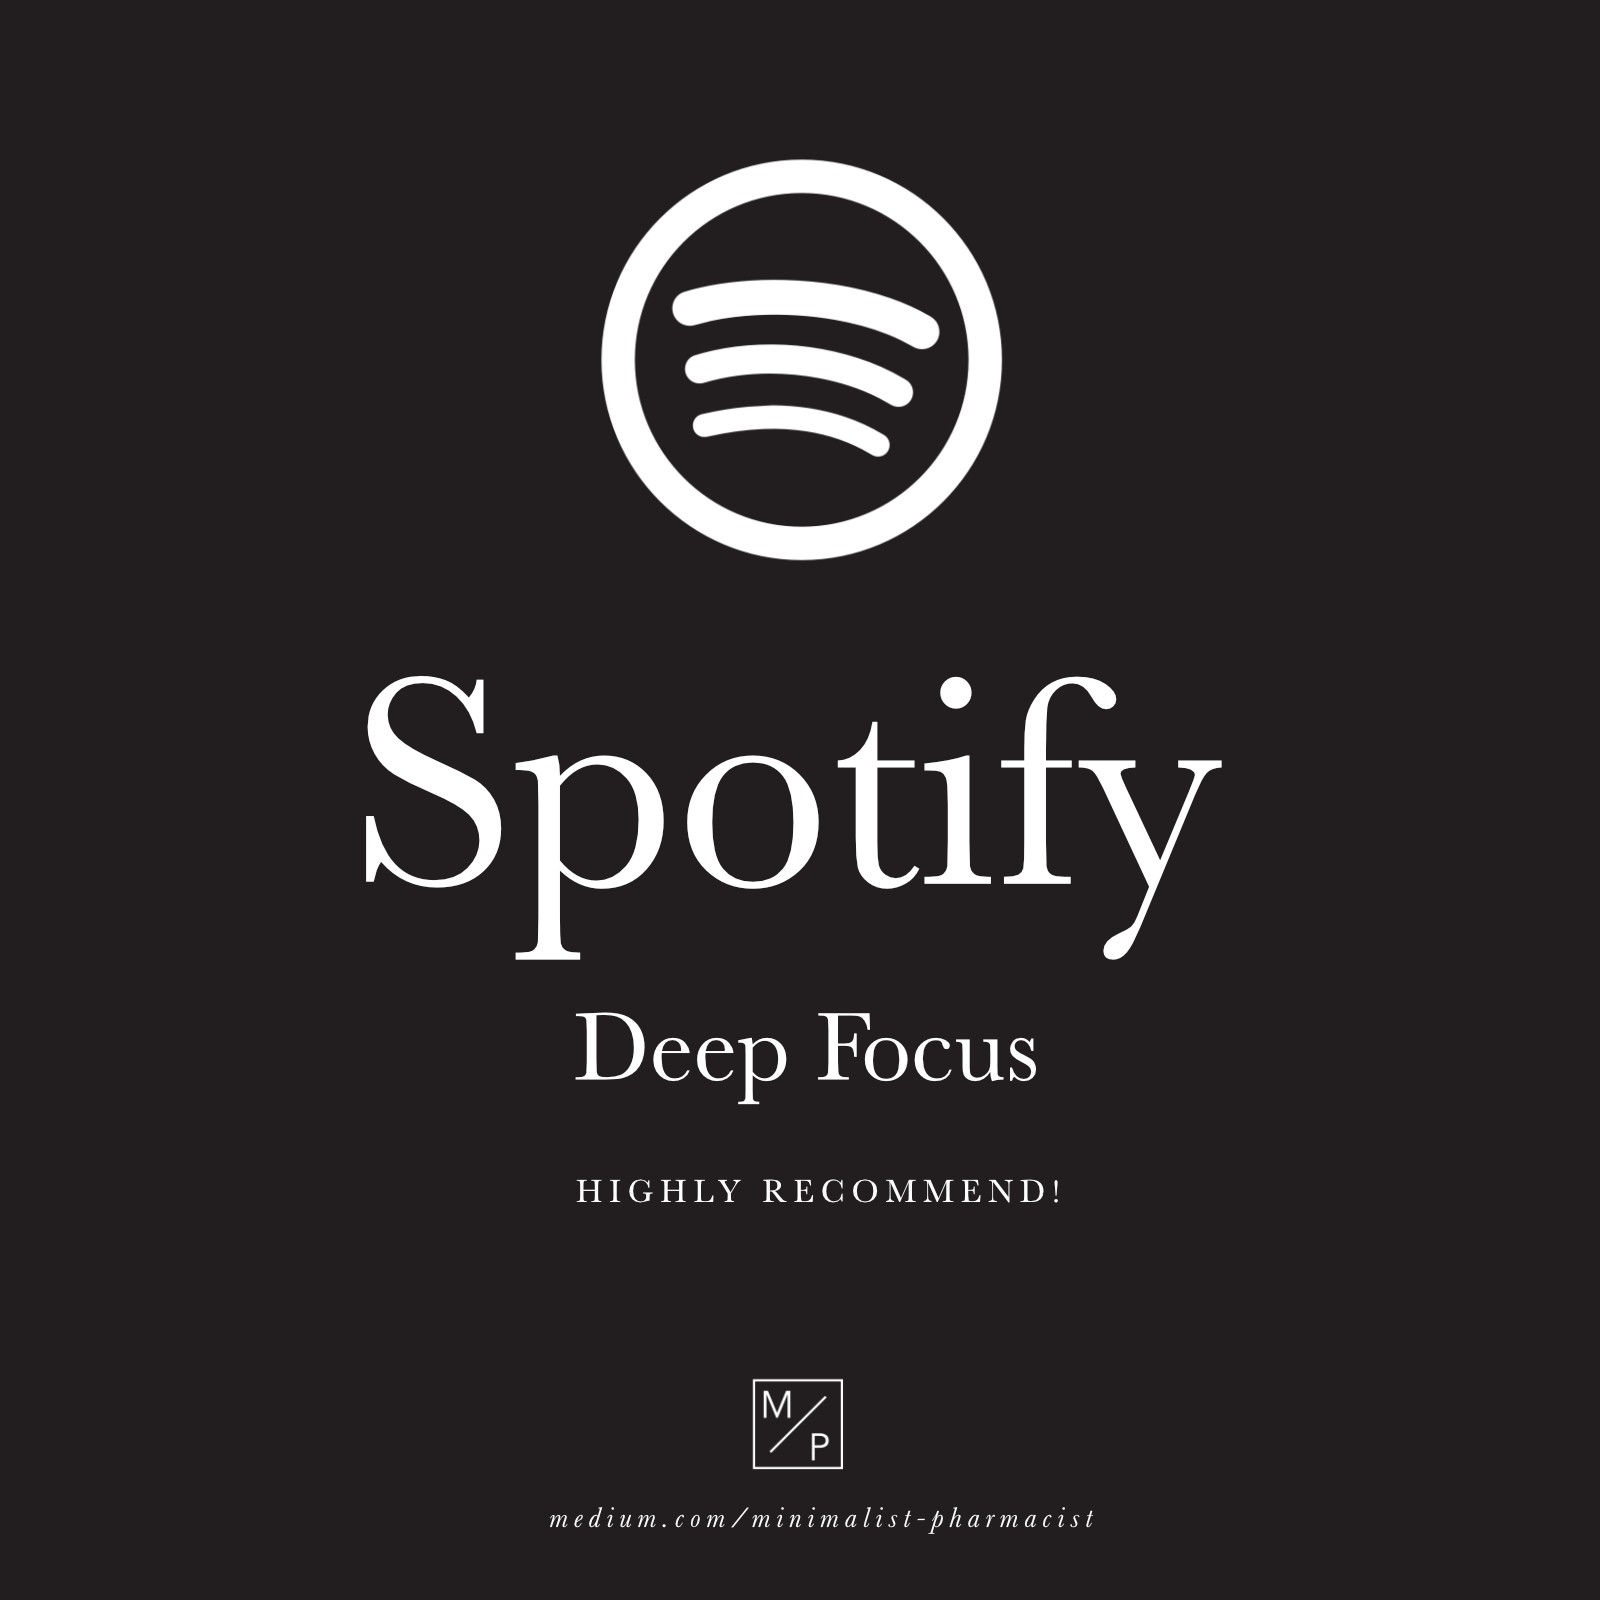 How I Use Spotify to Boost Productivity - Minimalist / Pharmacist